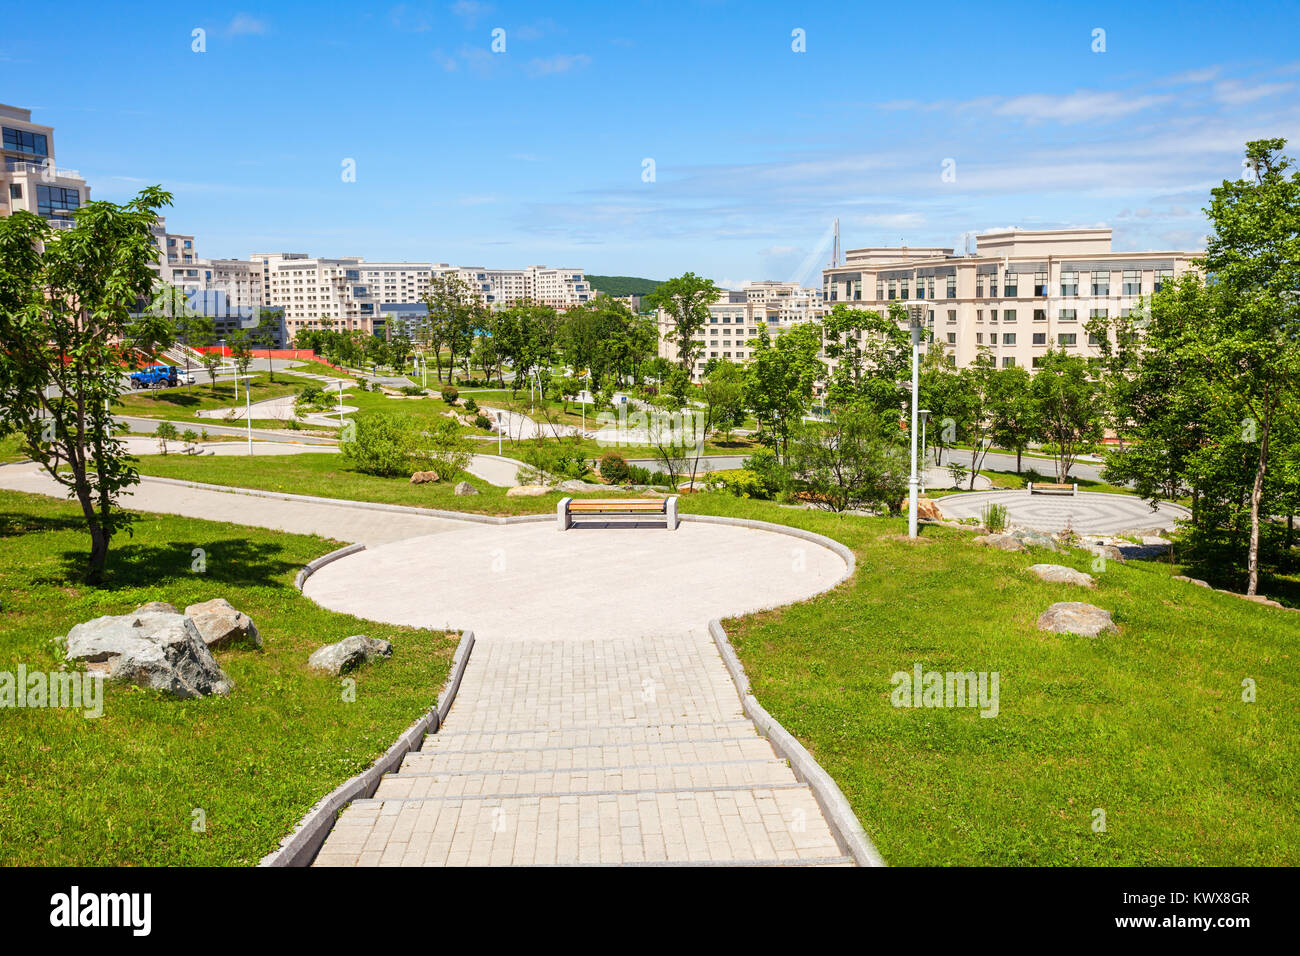 Far Eastern Federal University (Dalnevostochny Federalny Universitet or DVFU) campus buildings. It is an institution - Stock Image